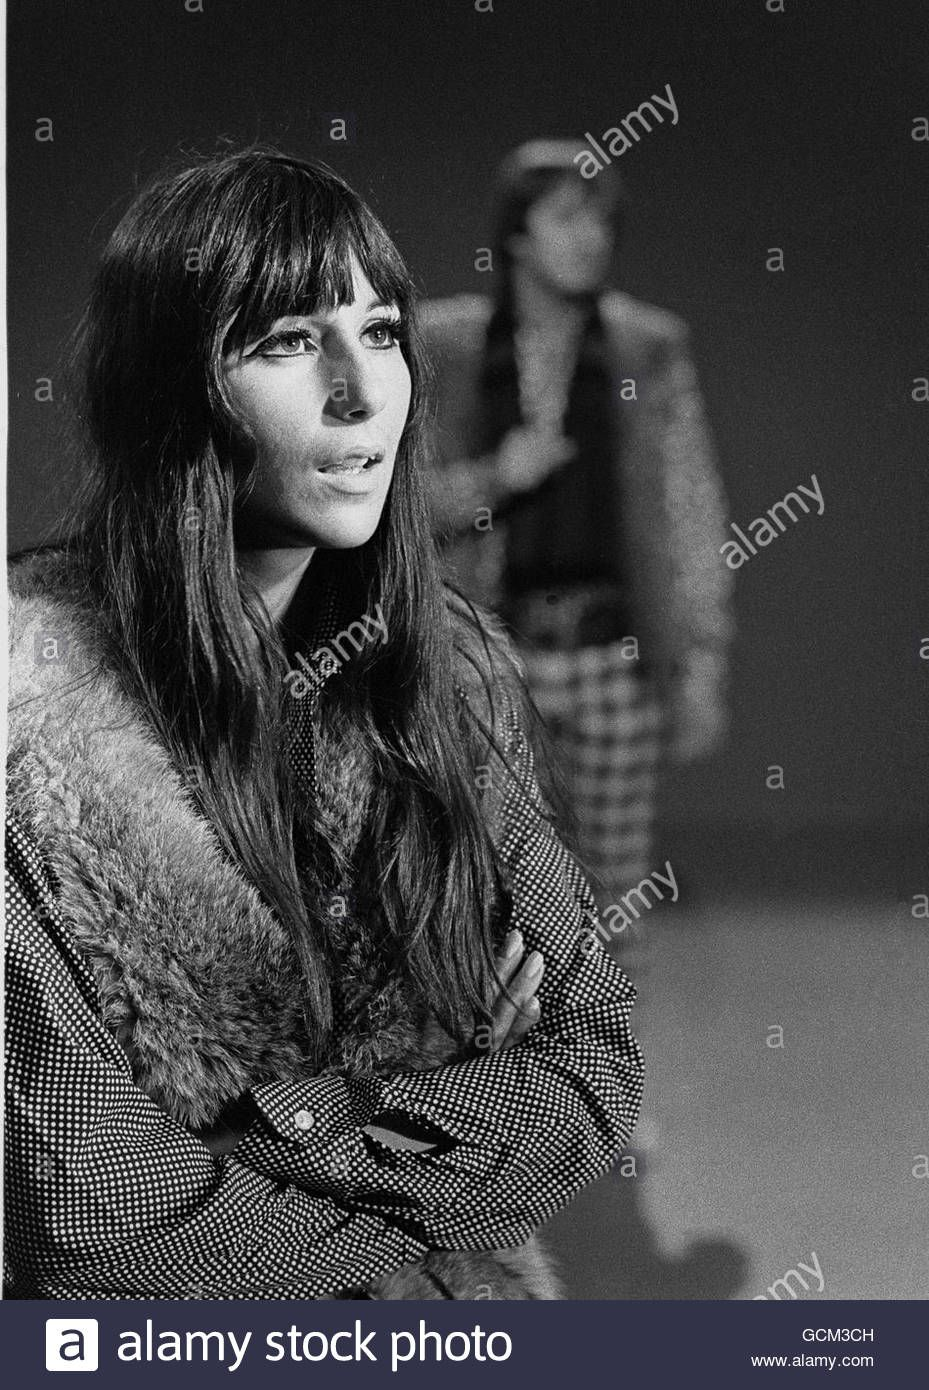 98b0c550643 Download this stock image: Sonny and Cher US Artists - GCM3CH from Alamy's  library of millions of high resolution stock photos, illustrations and  vectors.